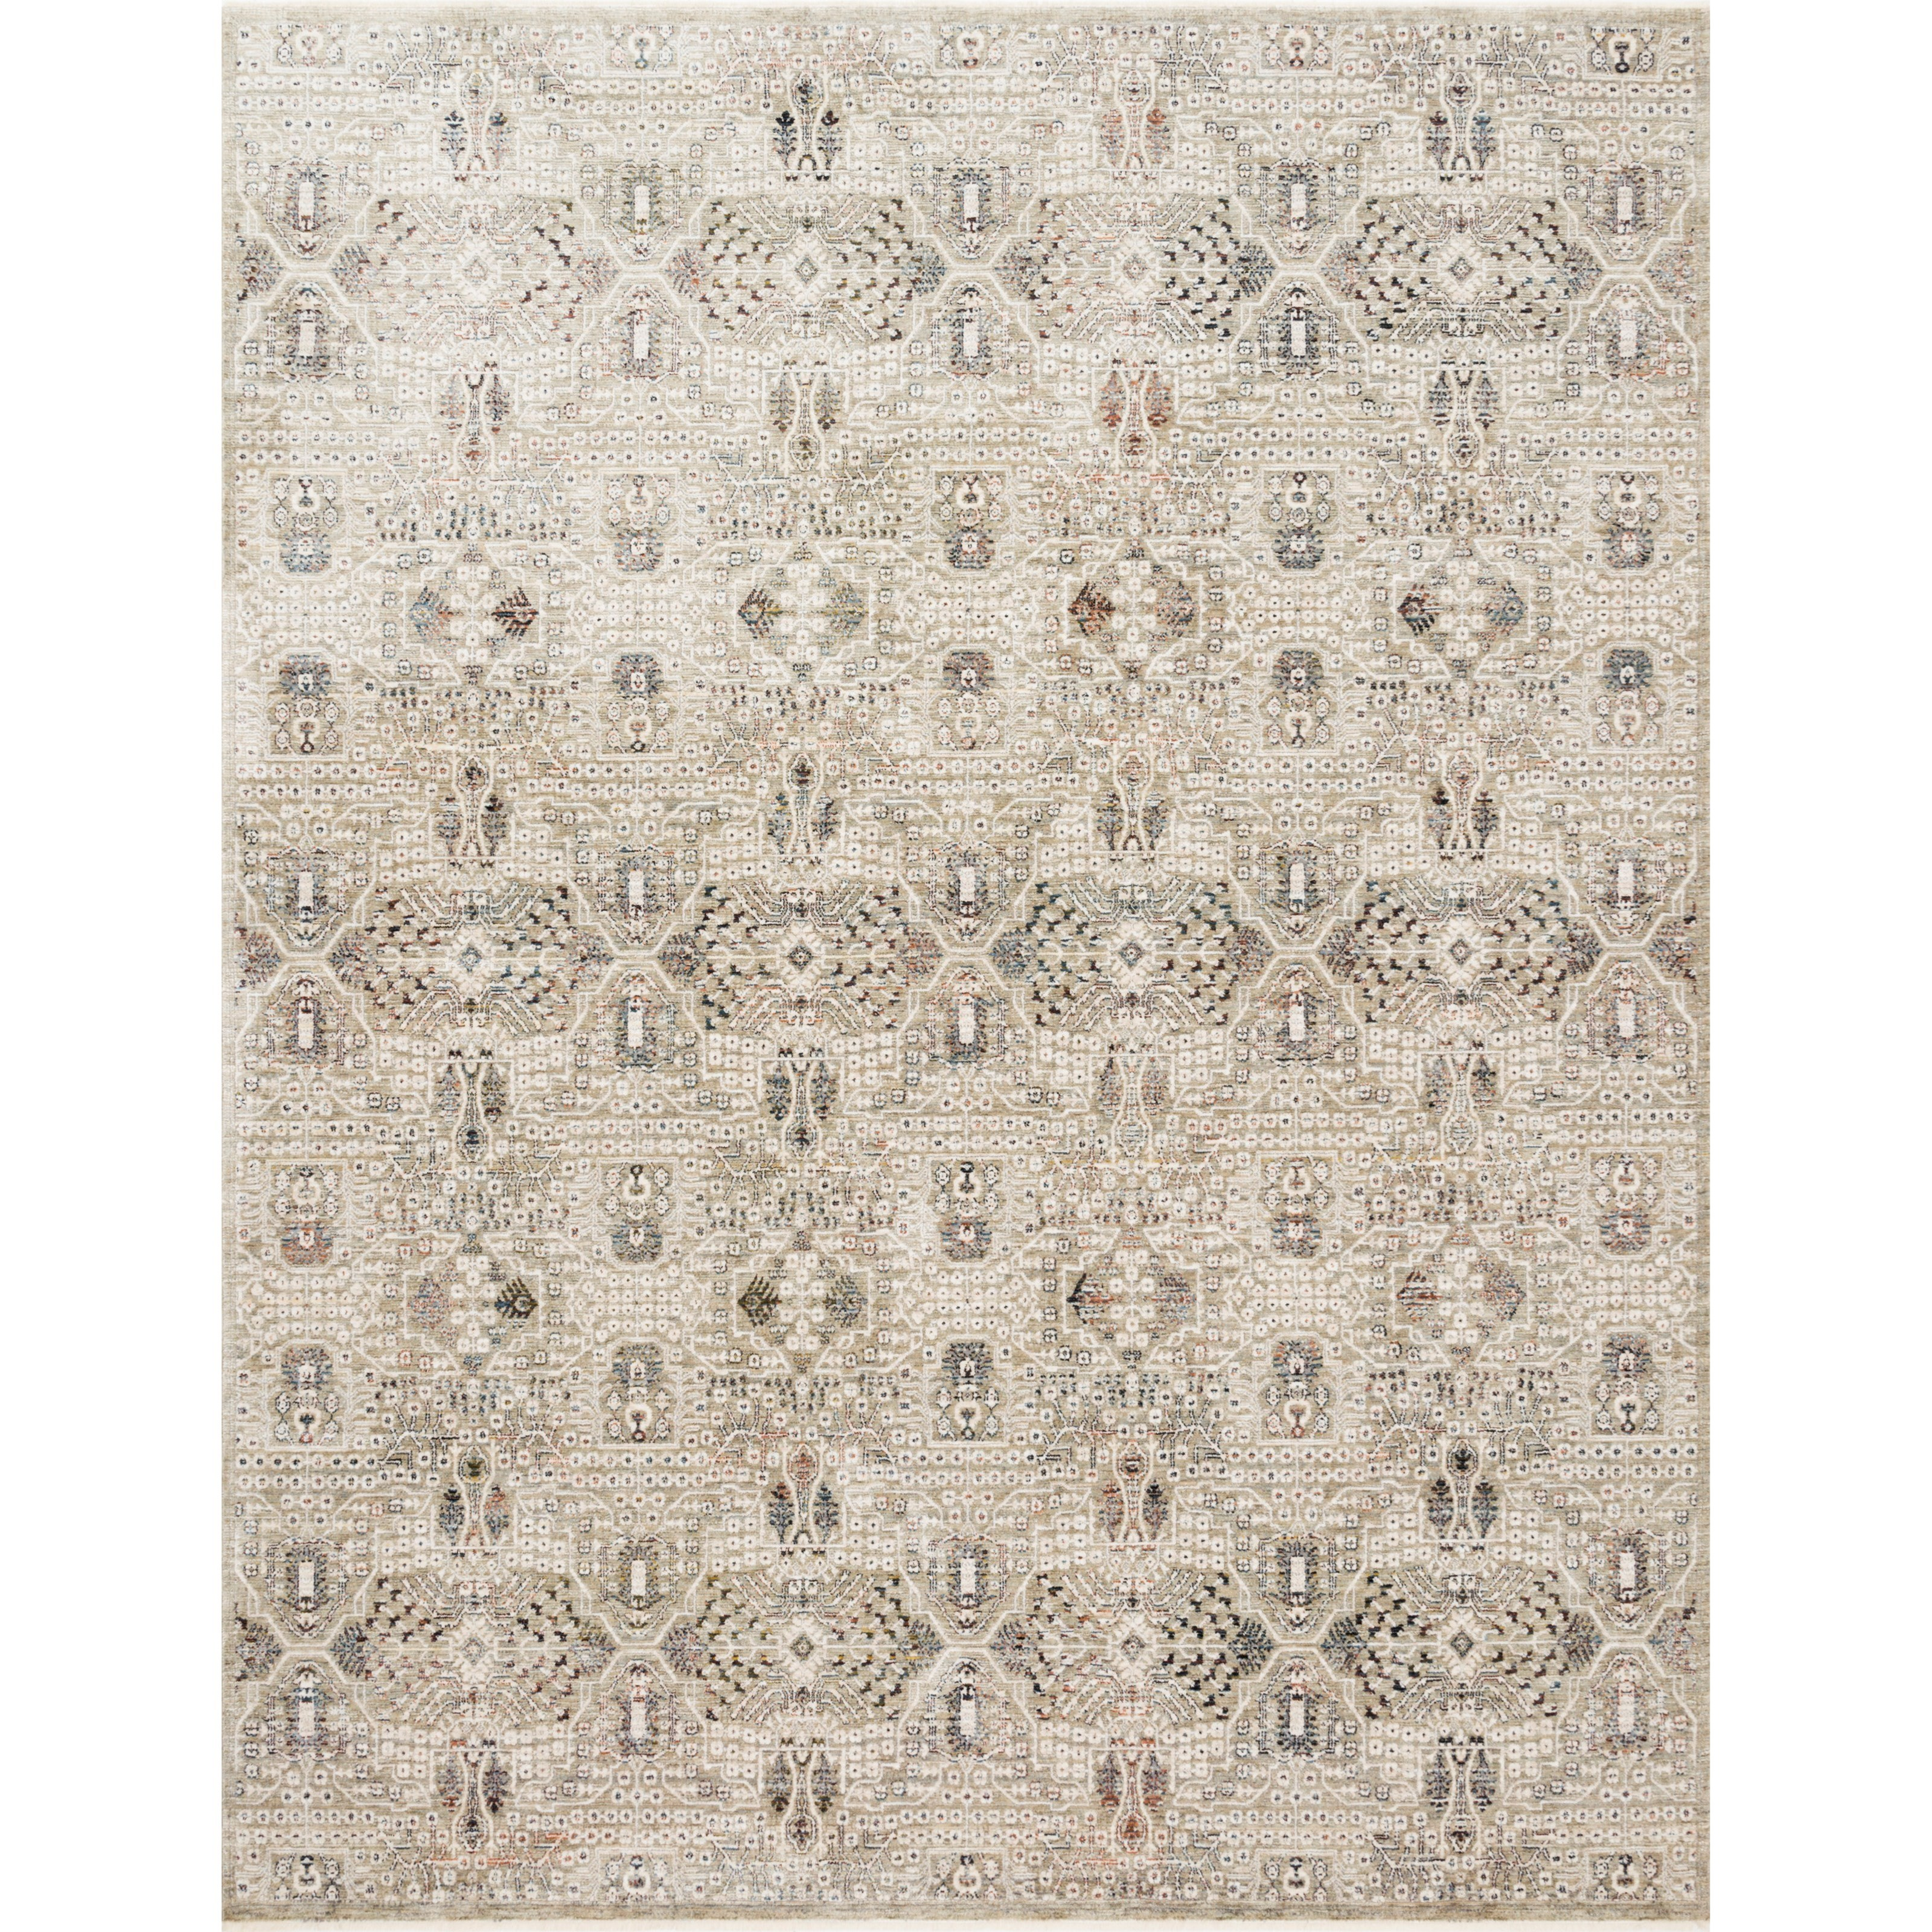 """Theia 1'6"""" x 1'6""""  Granite / Ivory Rug by Loloi Rugs at Virginia Furniture Market"""